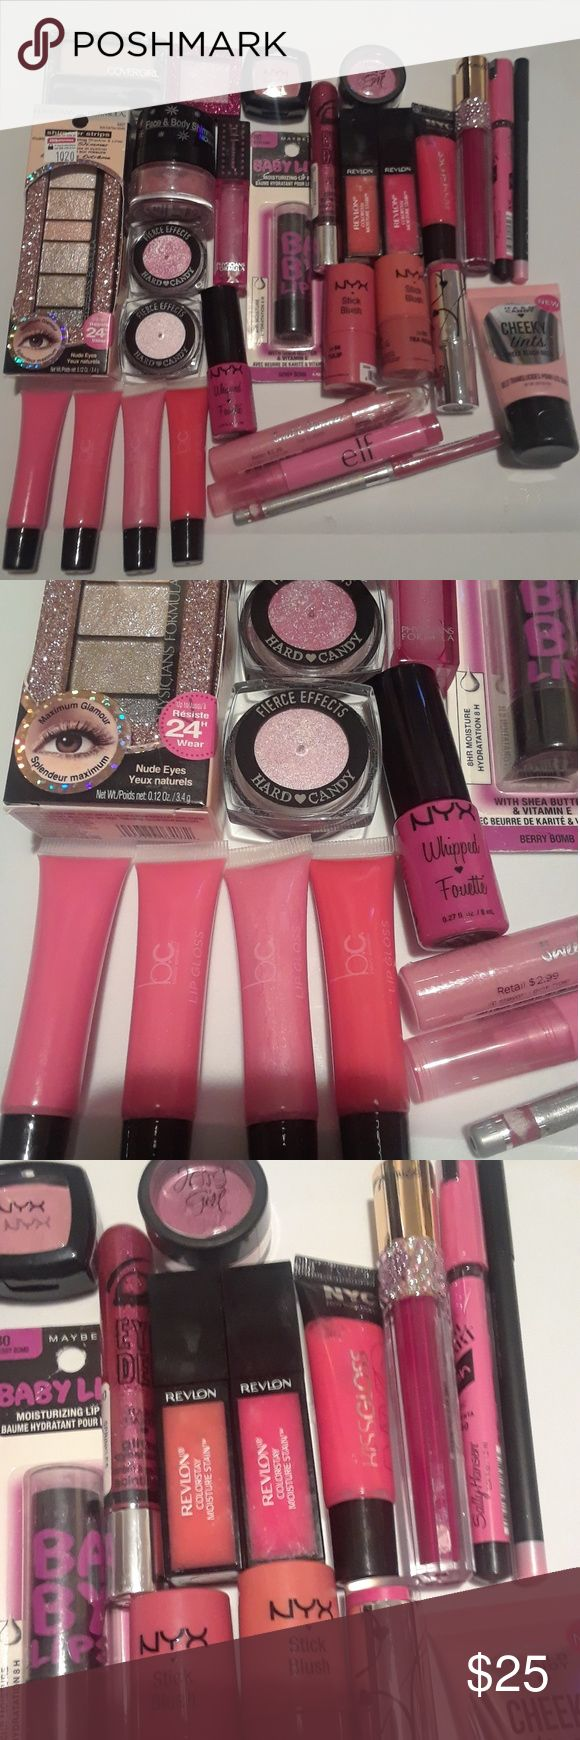 Mixed Pink makeup bundle This bundle is all makeup new majority, only the Revlon Colorstay Lipstains were opened to see the color.  The physicians formula eyeshadow is new in stores at CVS for $12, I just don't want to return it because of my extrabucks.  Idk how that works but the rest is new with lipsticks, lipglosses, eyeshadows, blushes, eyeliner, and 1 Sally Hansen nail polish pen.  There are 30 items in this bundle.  Brands from NYX,  Hard Candy,  Maybelline, Physician's Formula…